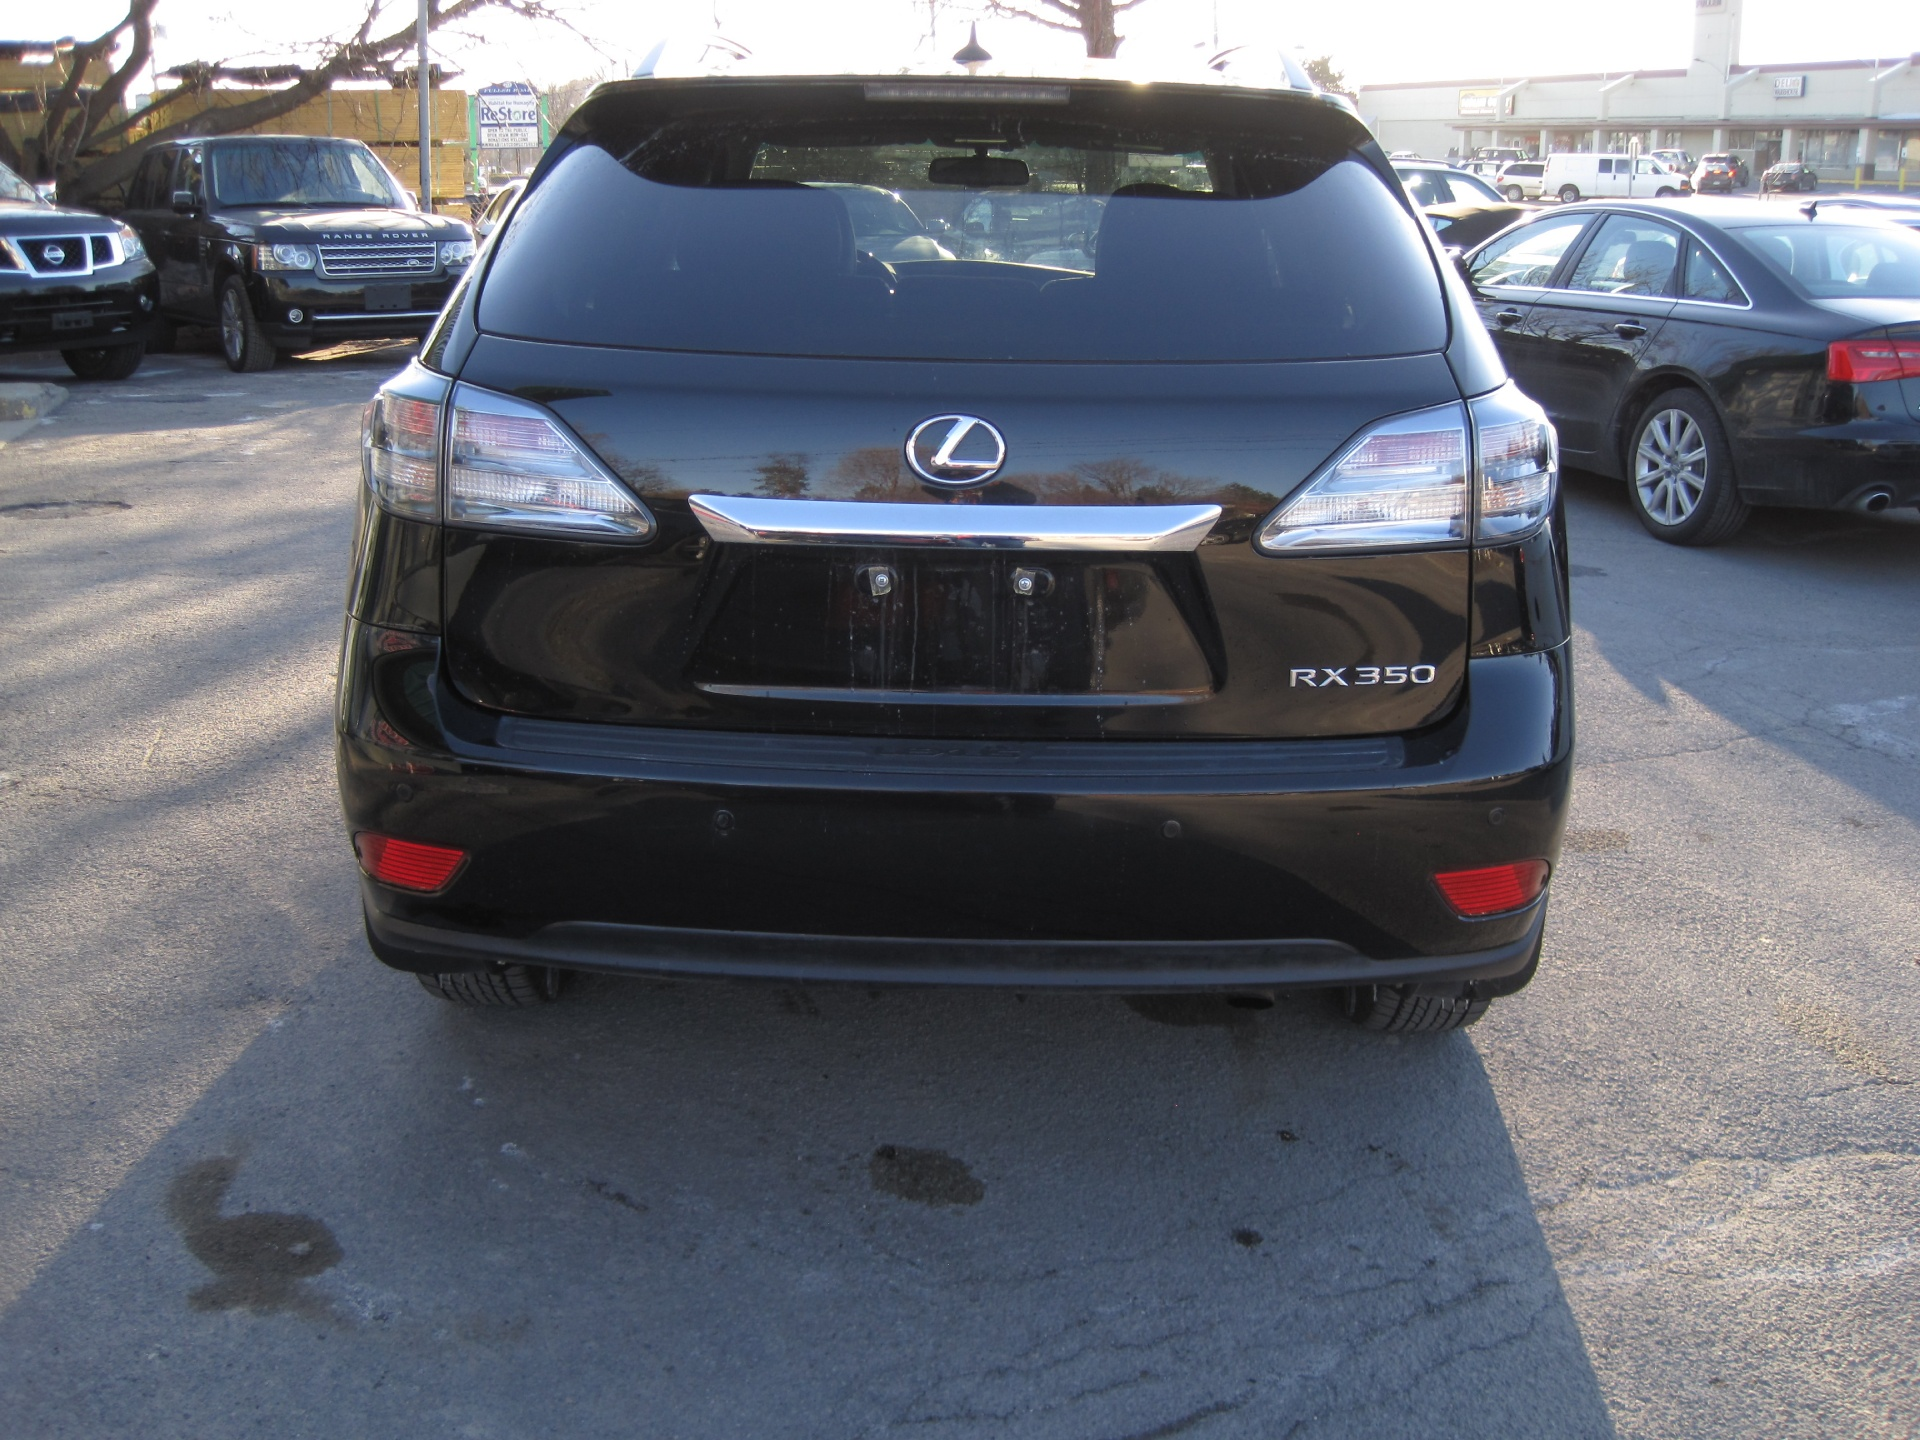 lexus photos and information rx zombiedrive